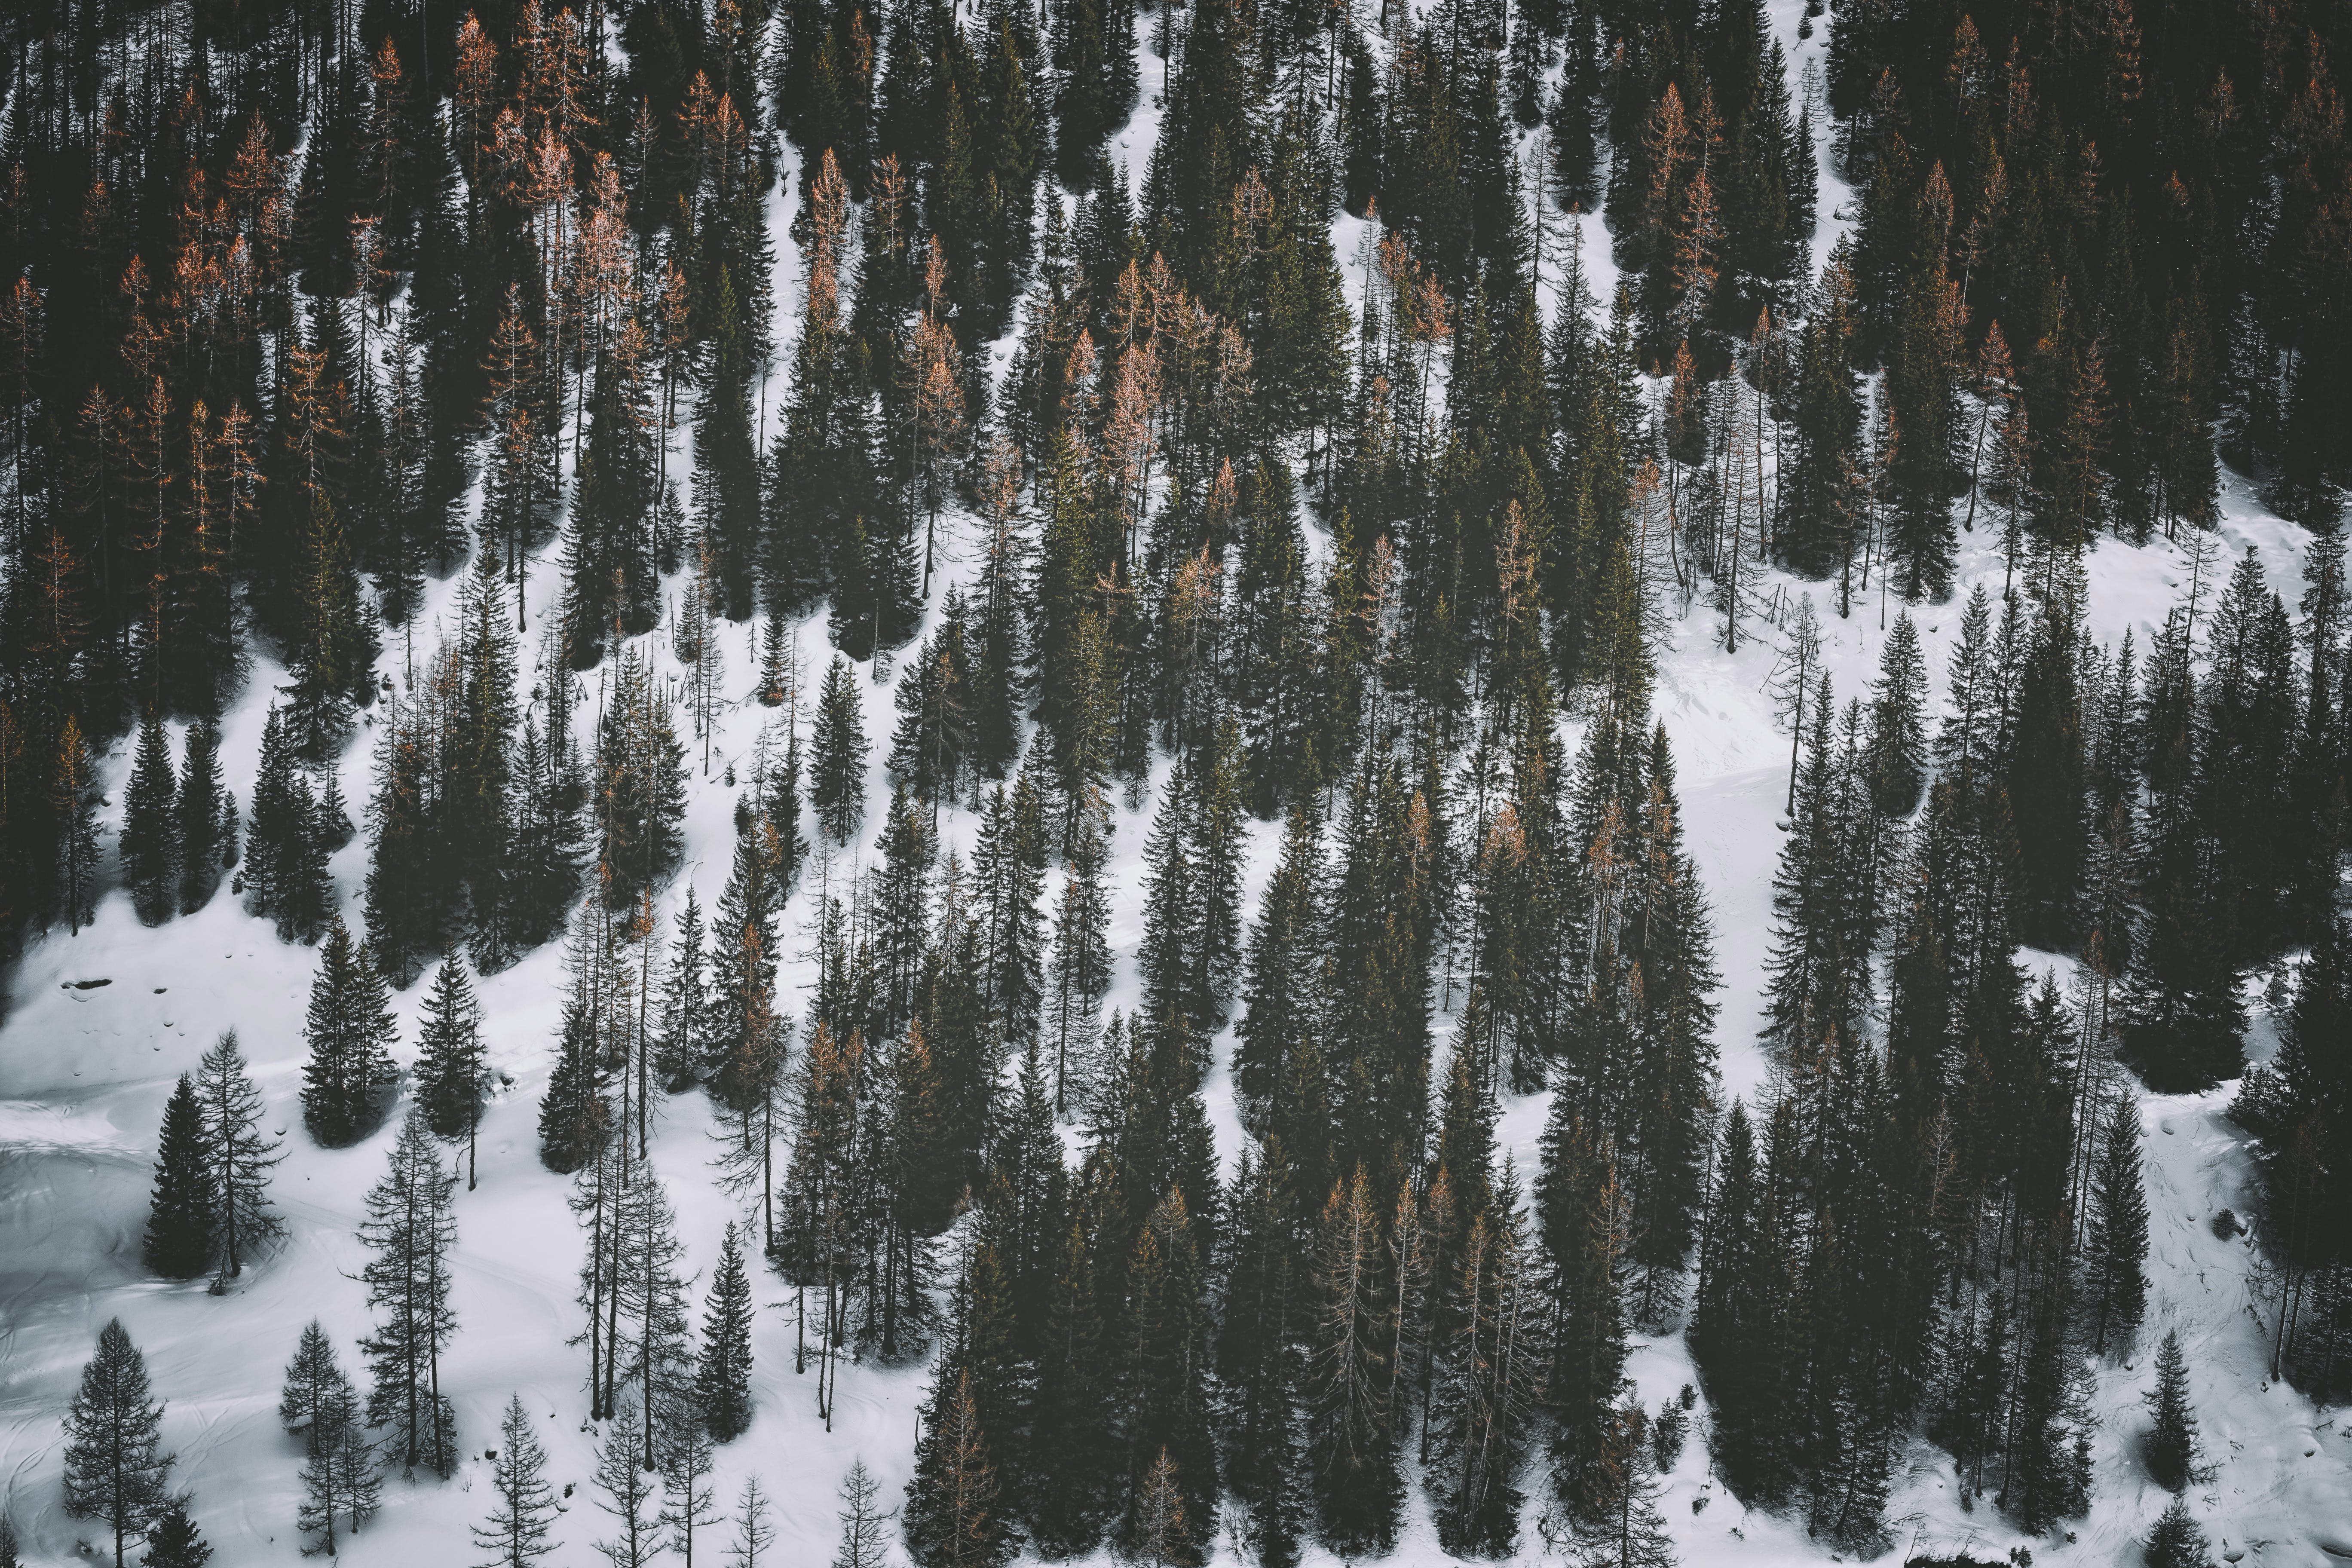 Snow Covered Ground With Pine Trees